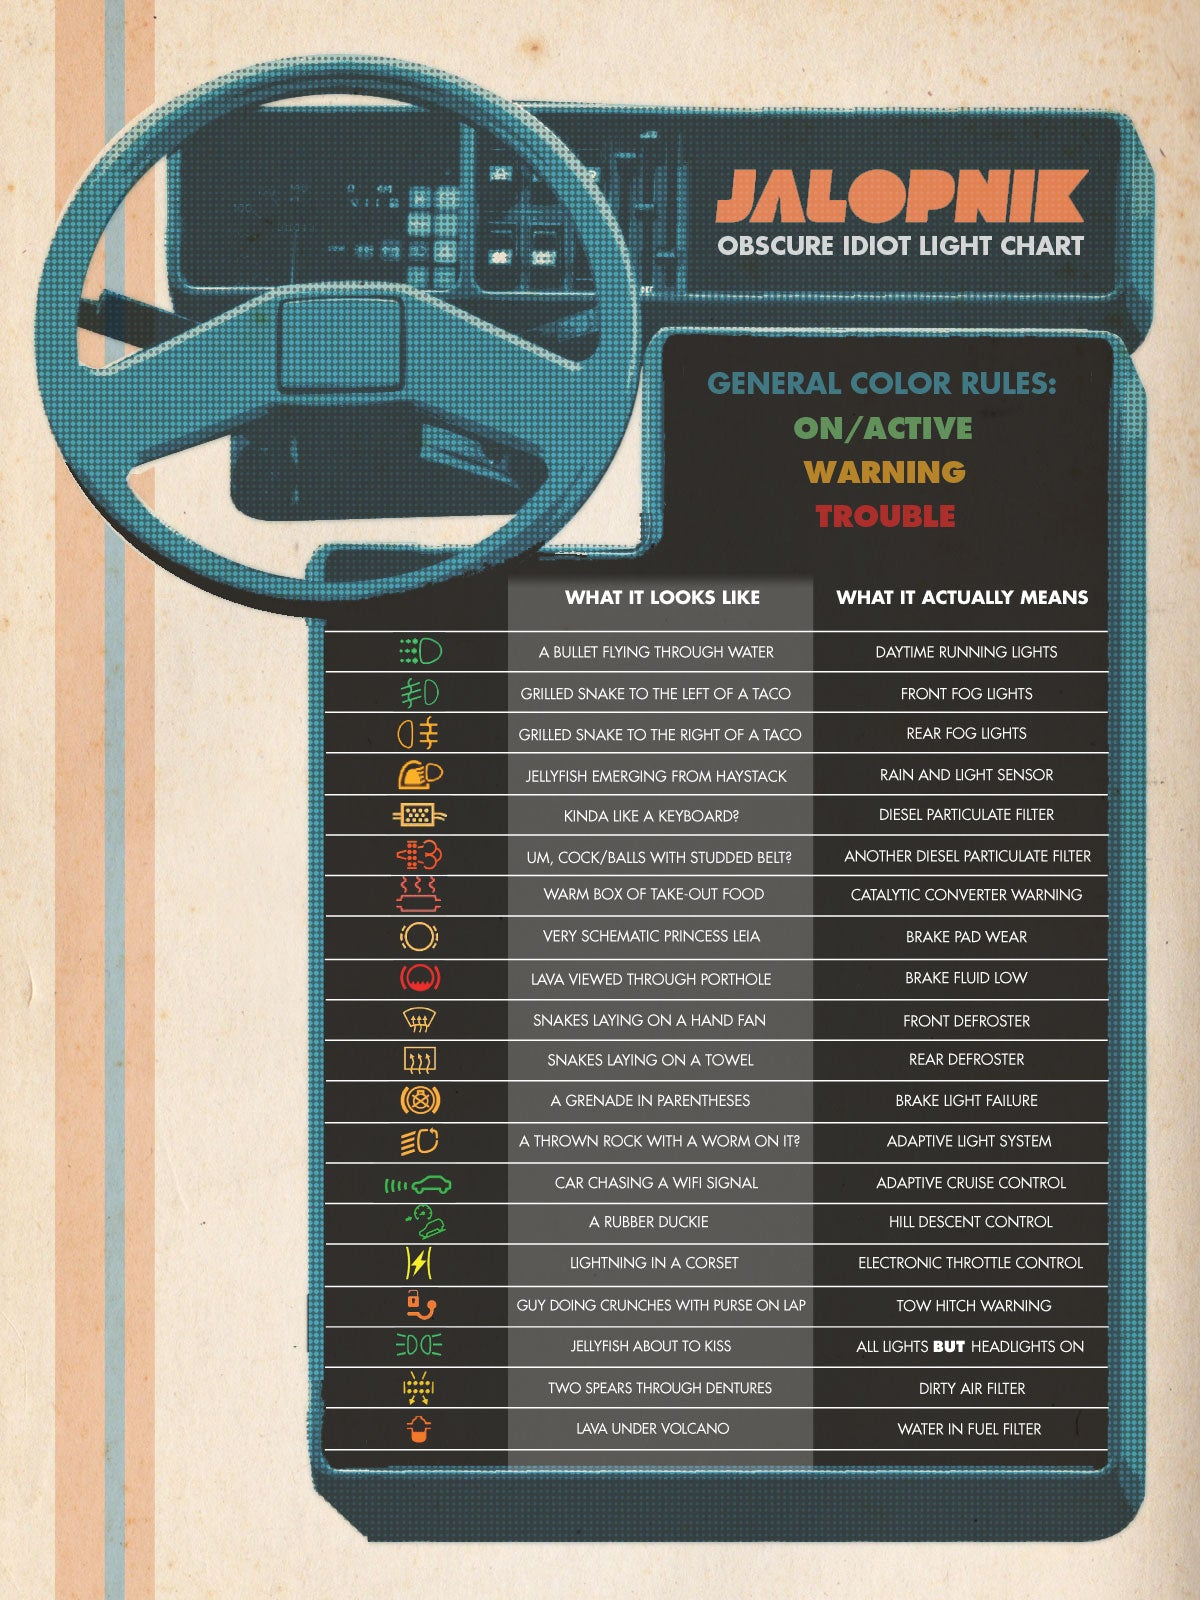 Car Warning Lights: What do they mean? - ZigWheels Forum